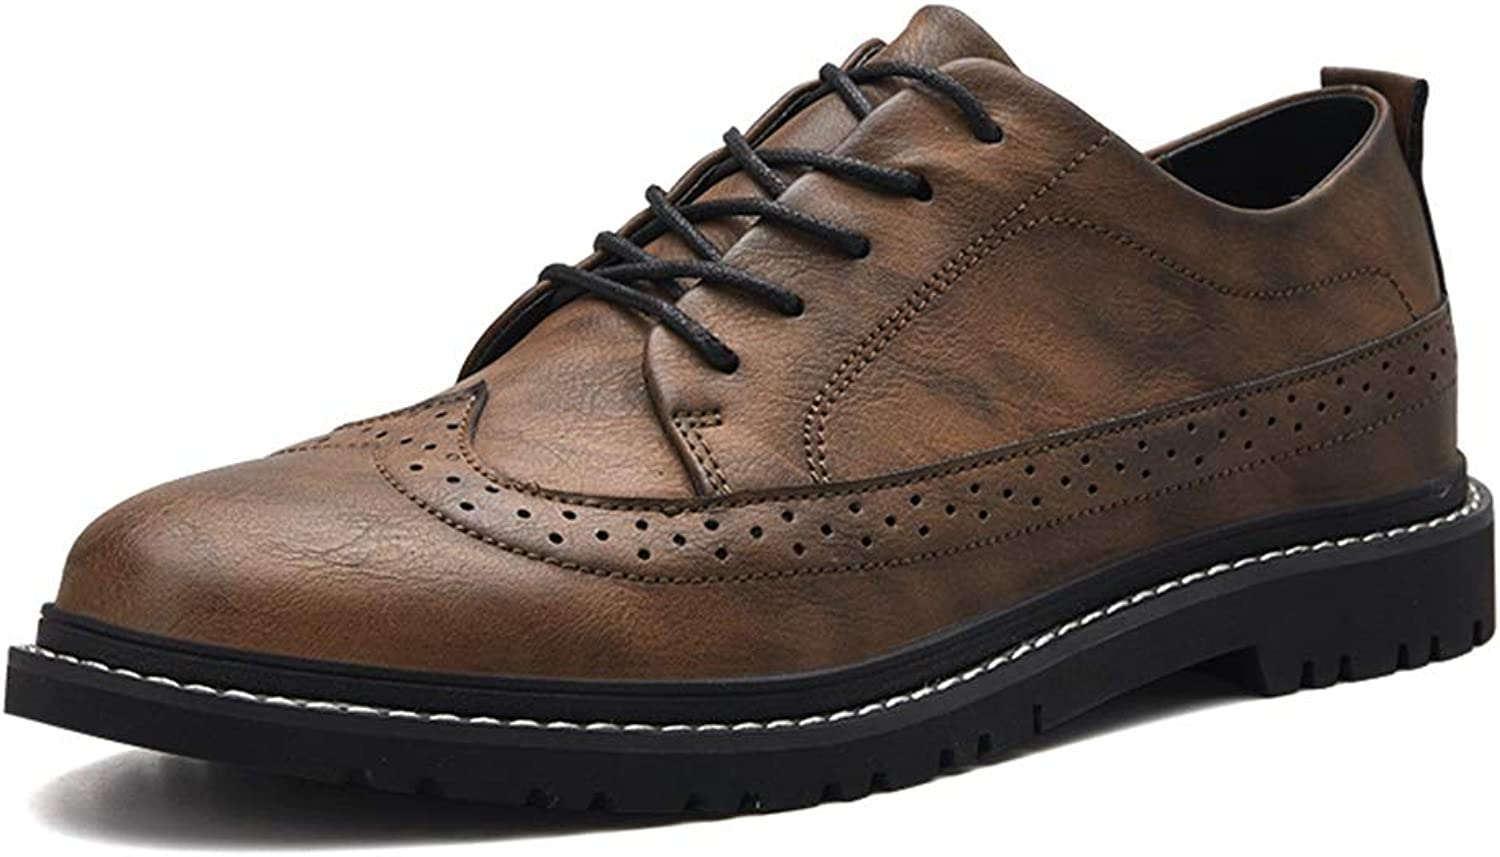 CHENDX shoes, Men's Fashion Breathable British style Oxford Casual Classic Carving Brogue shoes (color   Khaki, Size   8 UK)